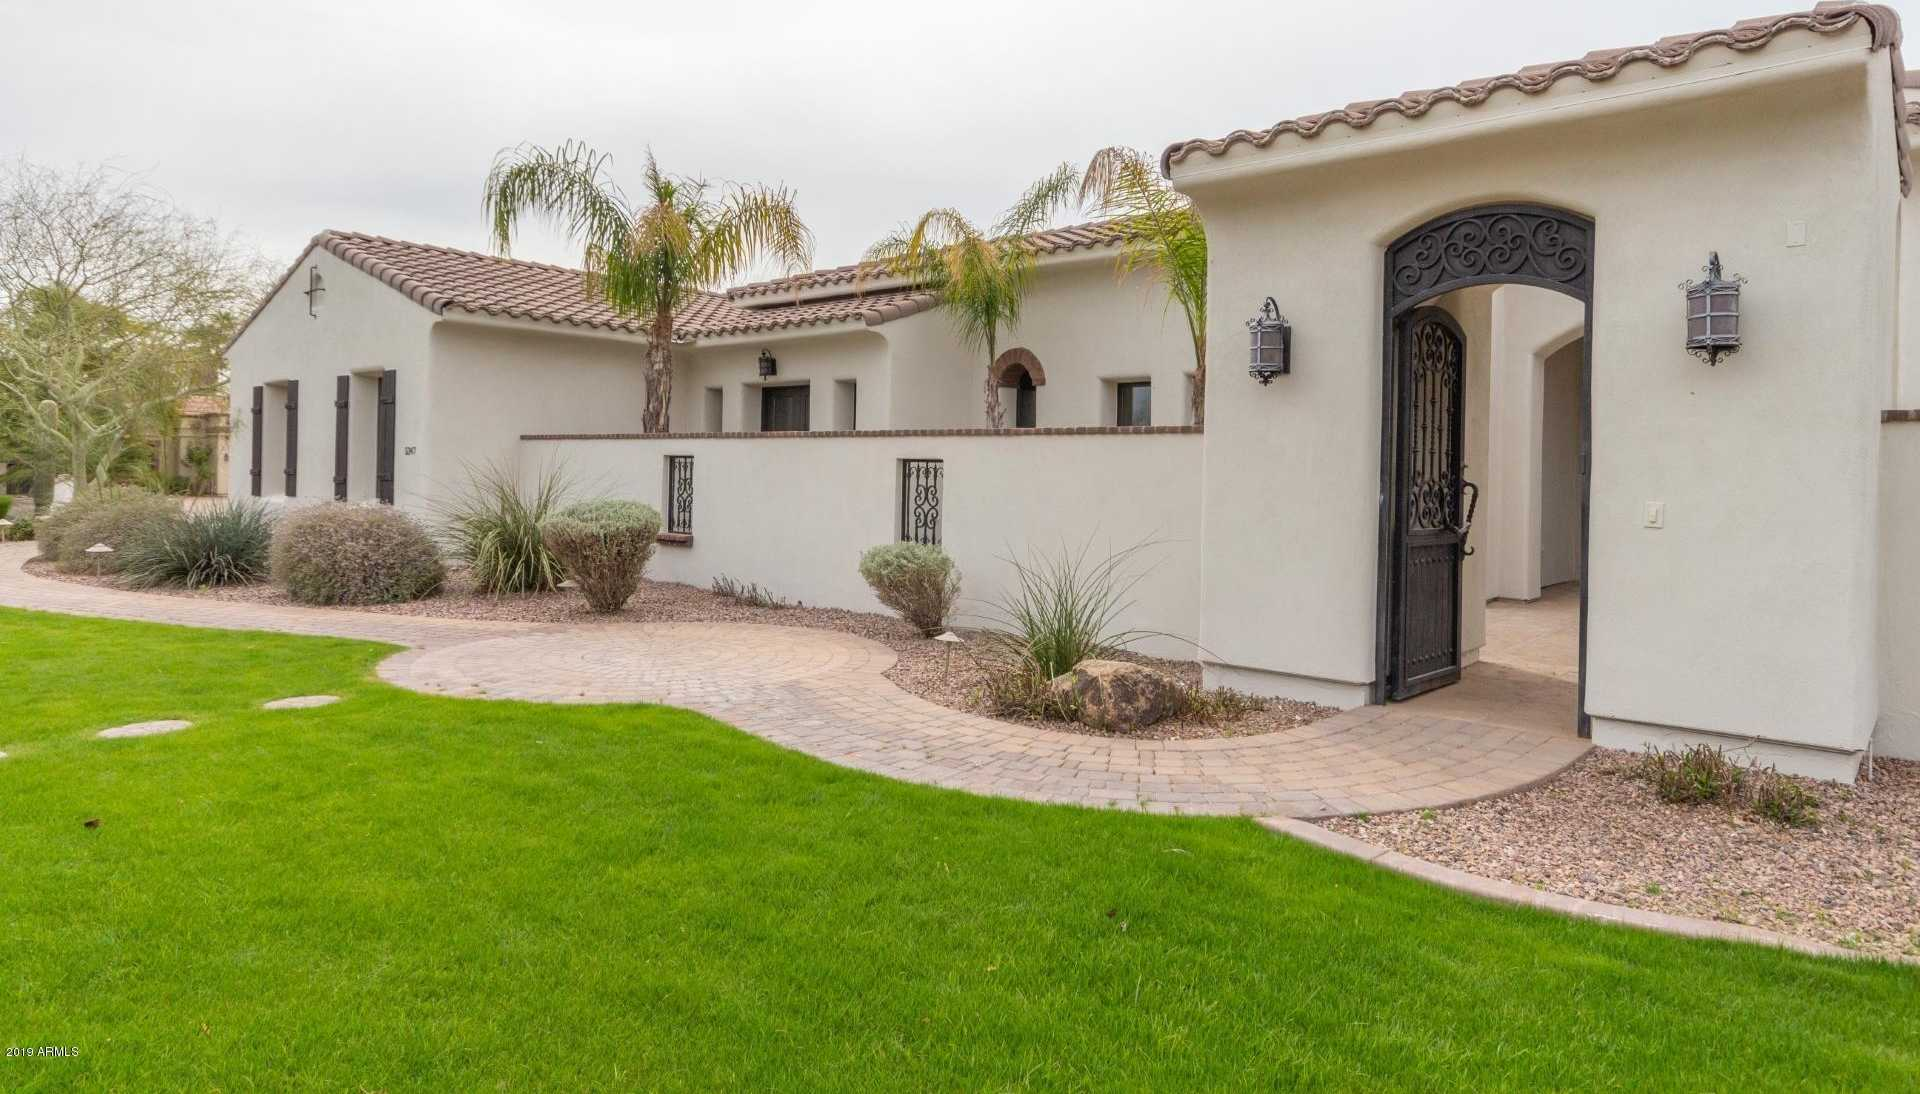 $2,800,000 - 5Br/5Ba - Home for Sale in Turquoise Hills 1a, Paradise Valley